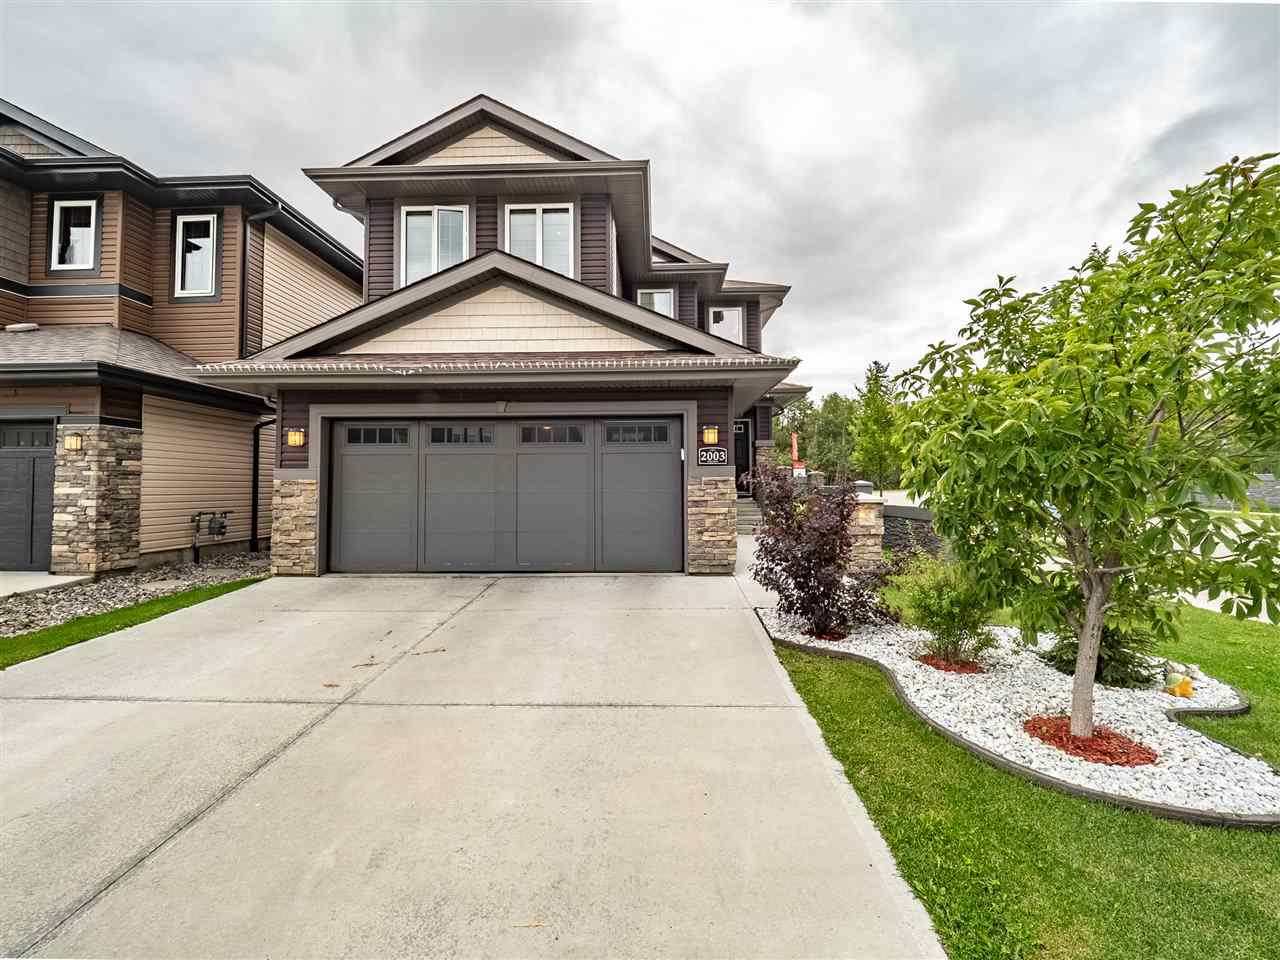 Main Photo: 2003 Redtail Common in Edmonton: Zone 59 House for sale : MLS®# E4182096